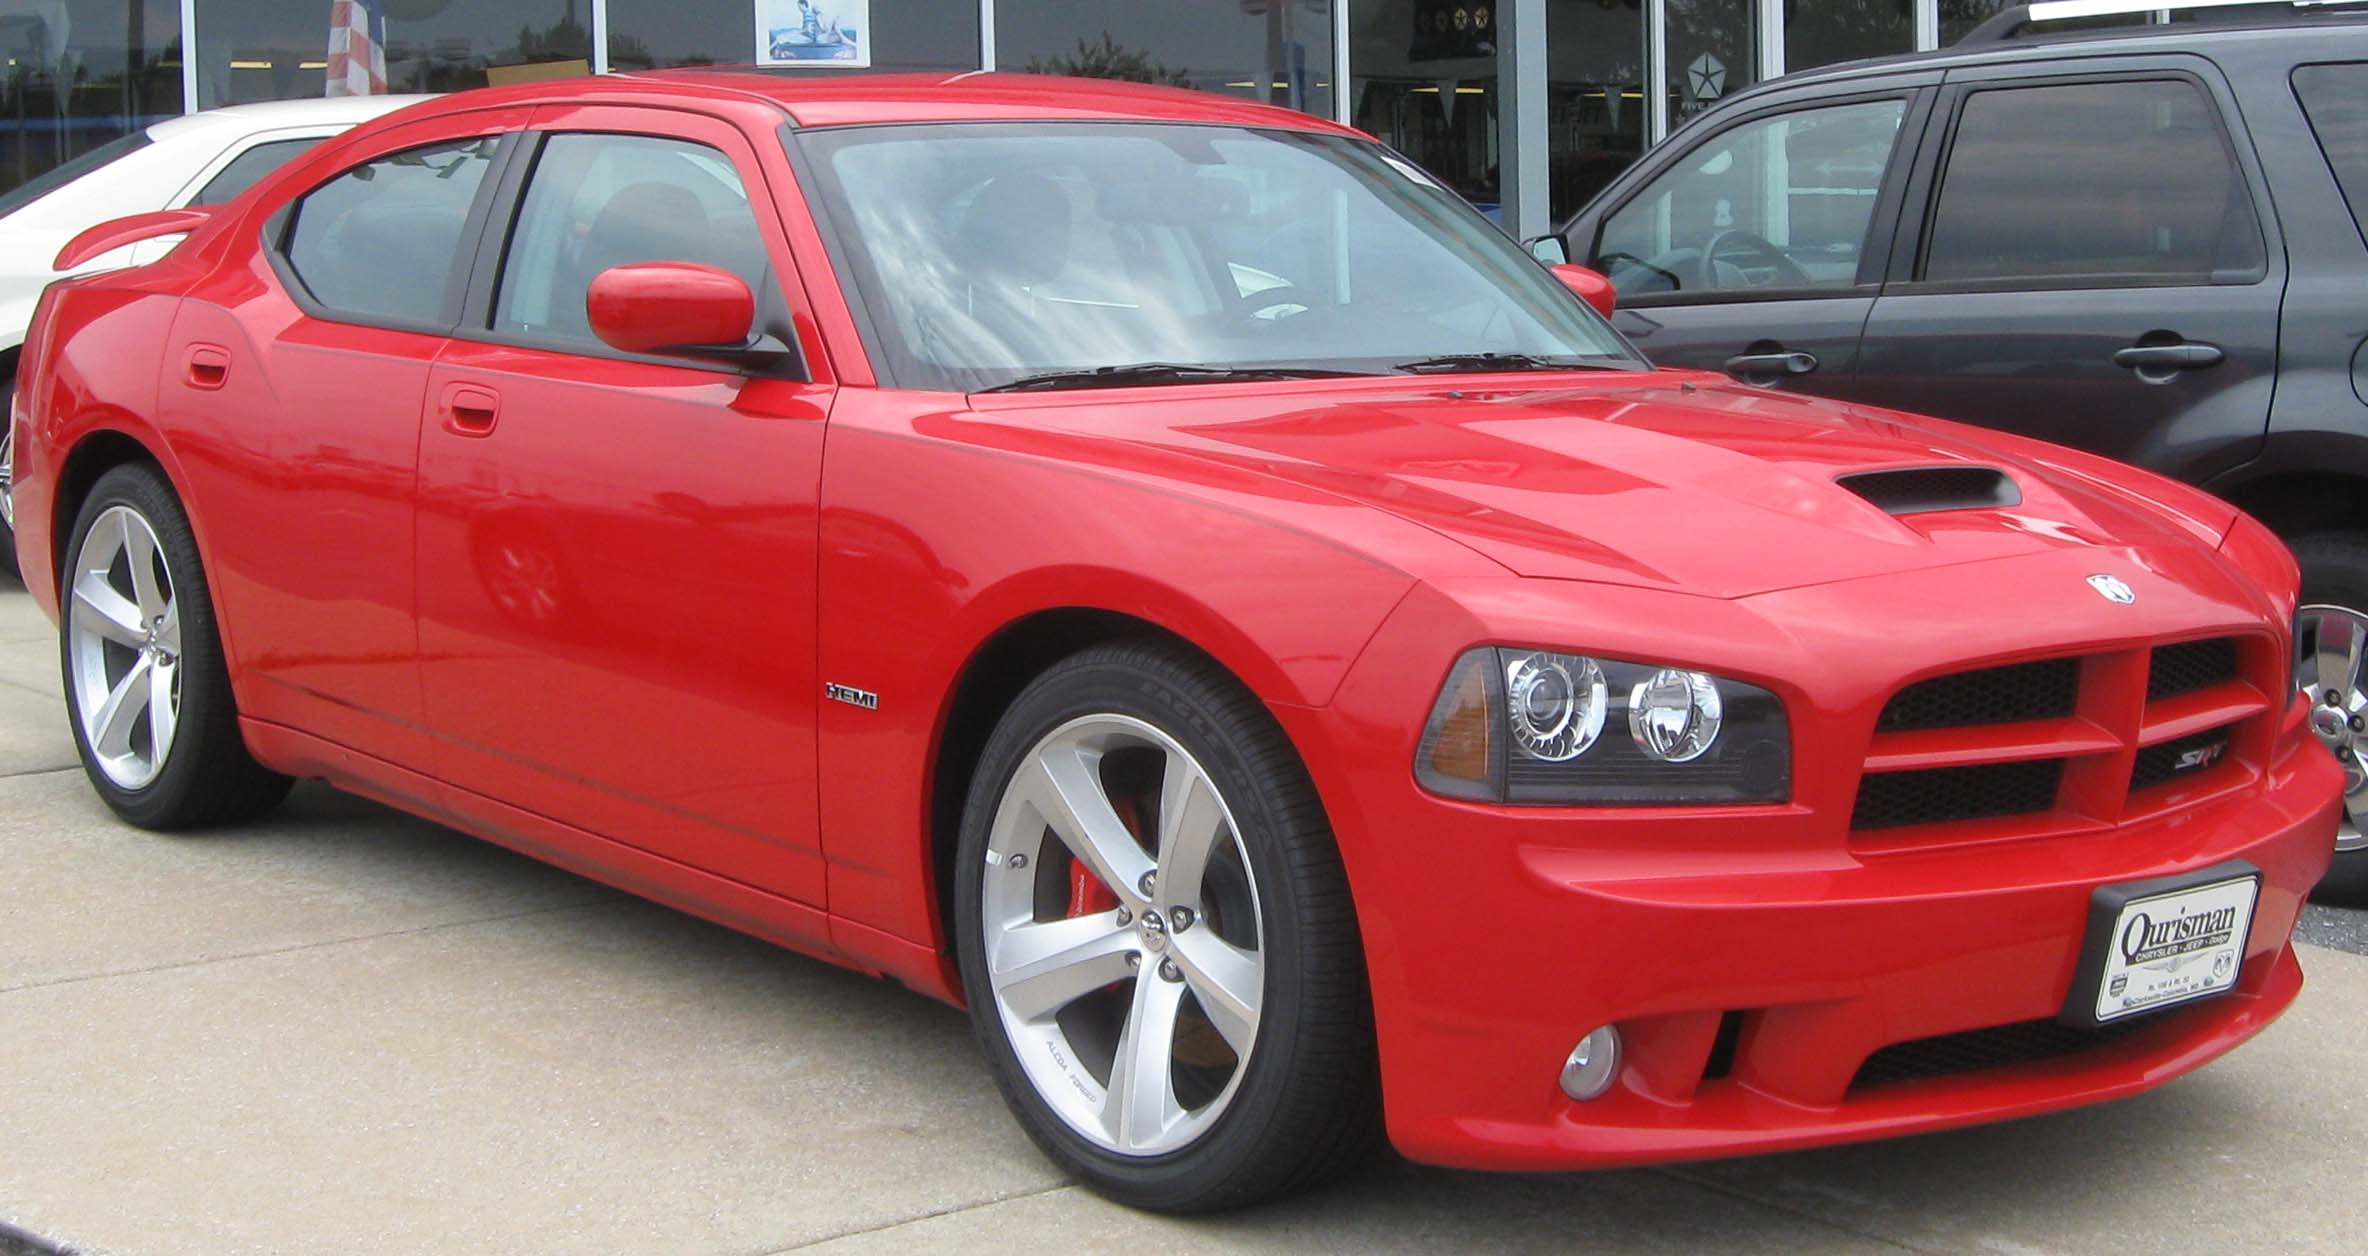 File 2010 Dodge Charger SRT 8 08 12 2010 Wikimedia mons